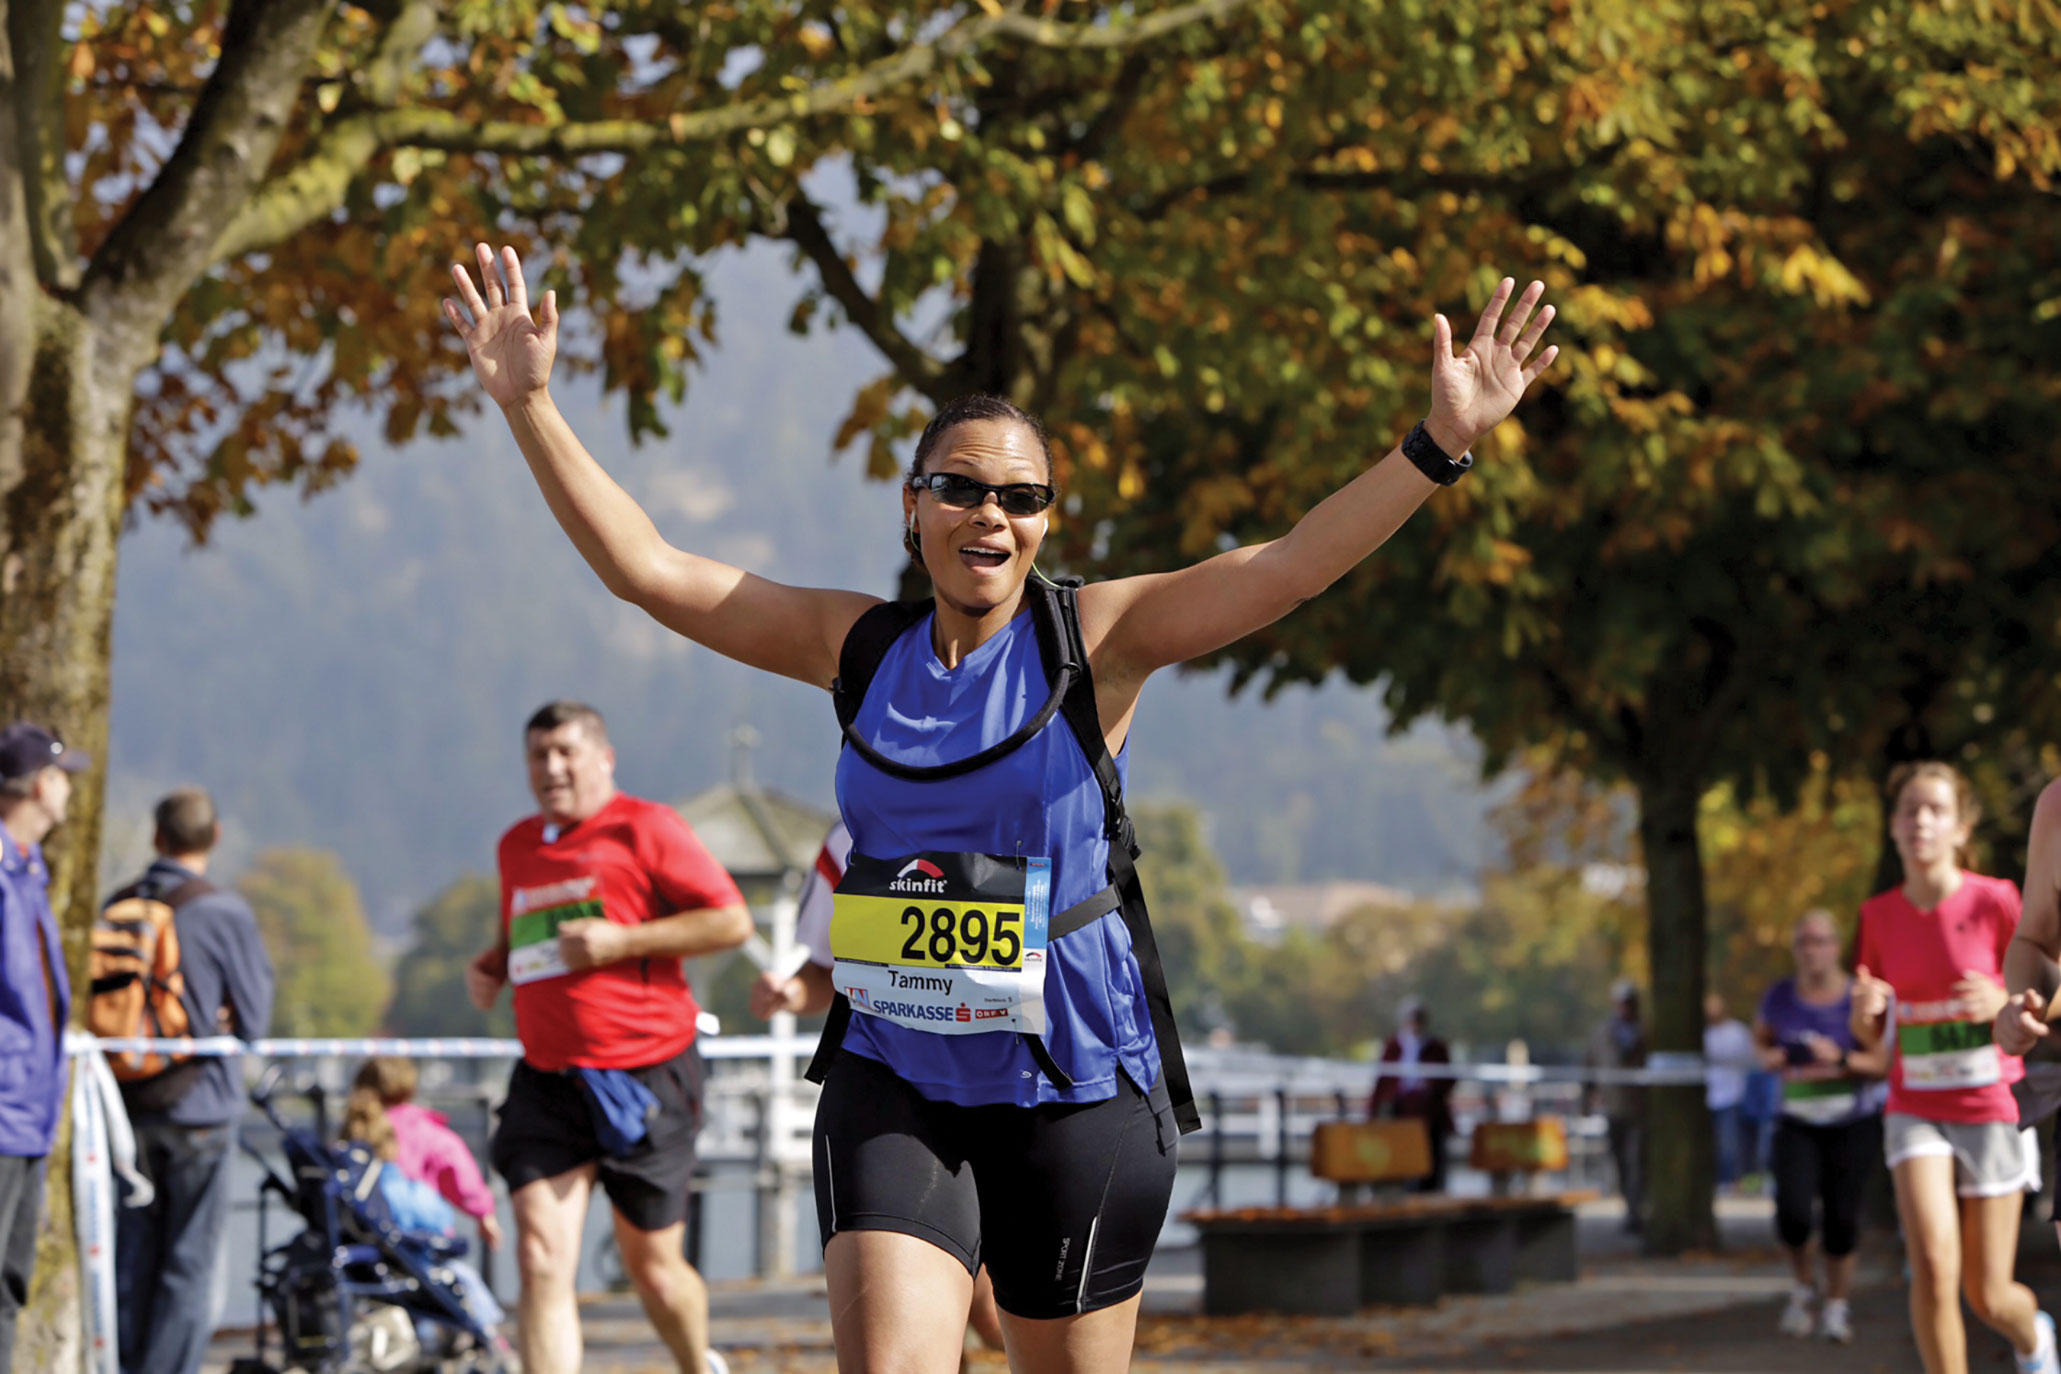 (Courtesy photo) Lake Constance, Germany — Lt. Col. Tammy Dotson, 21st Mission Support Group deputy commander, runs in the three-country SkinFit Half Marathon Oct. 5, 2014 along Lake Constance, which includes Germany, Austria and Switzerland. Dotson's goal is to run a half marathon in every state and has completed them in 16 states and eight countries.